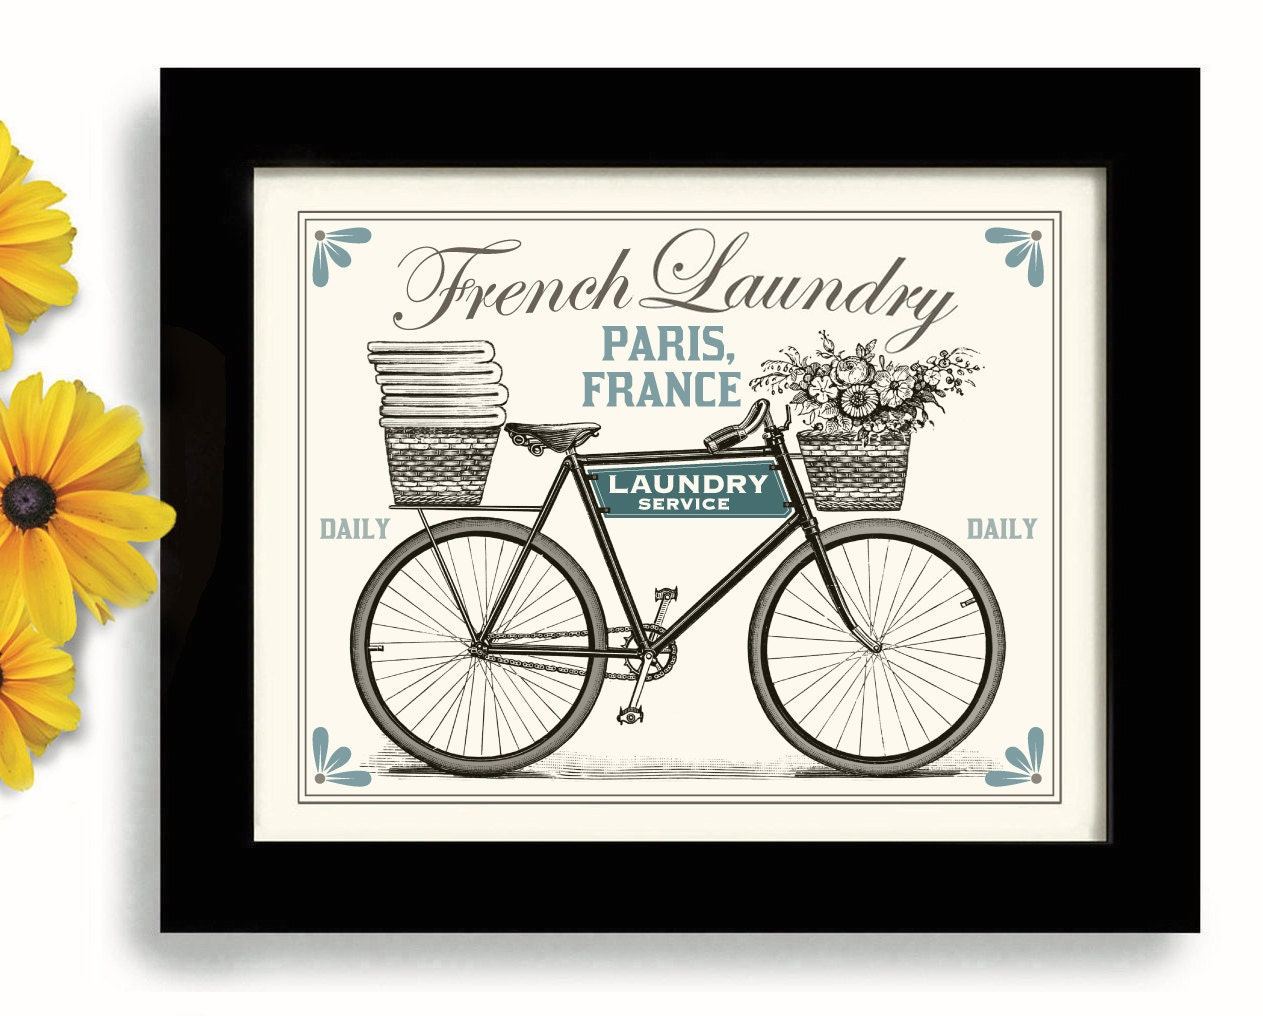 Laundry room art decor country french laundry paris france zoom amipublicfo Gallery